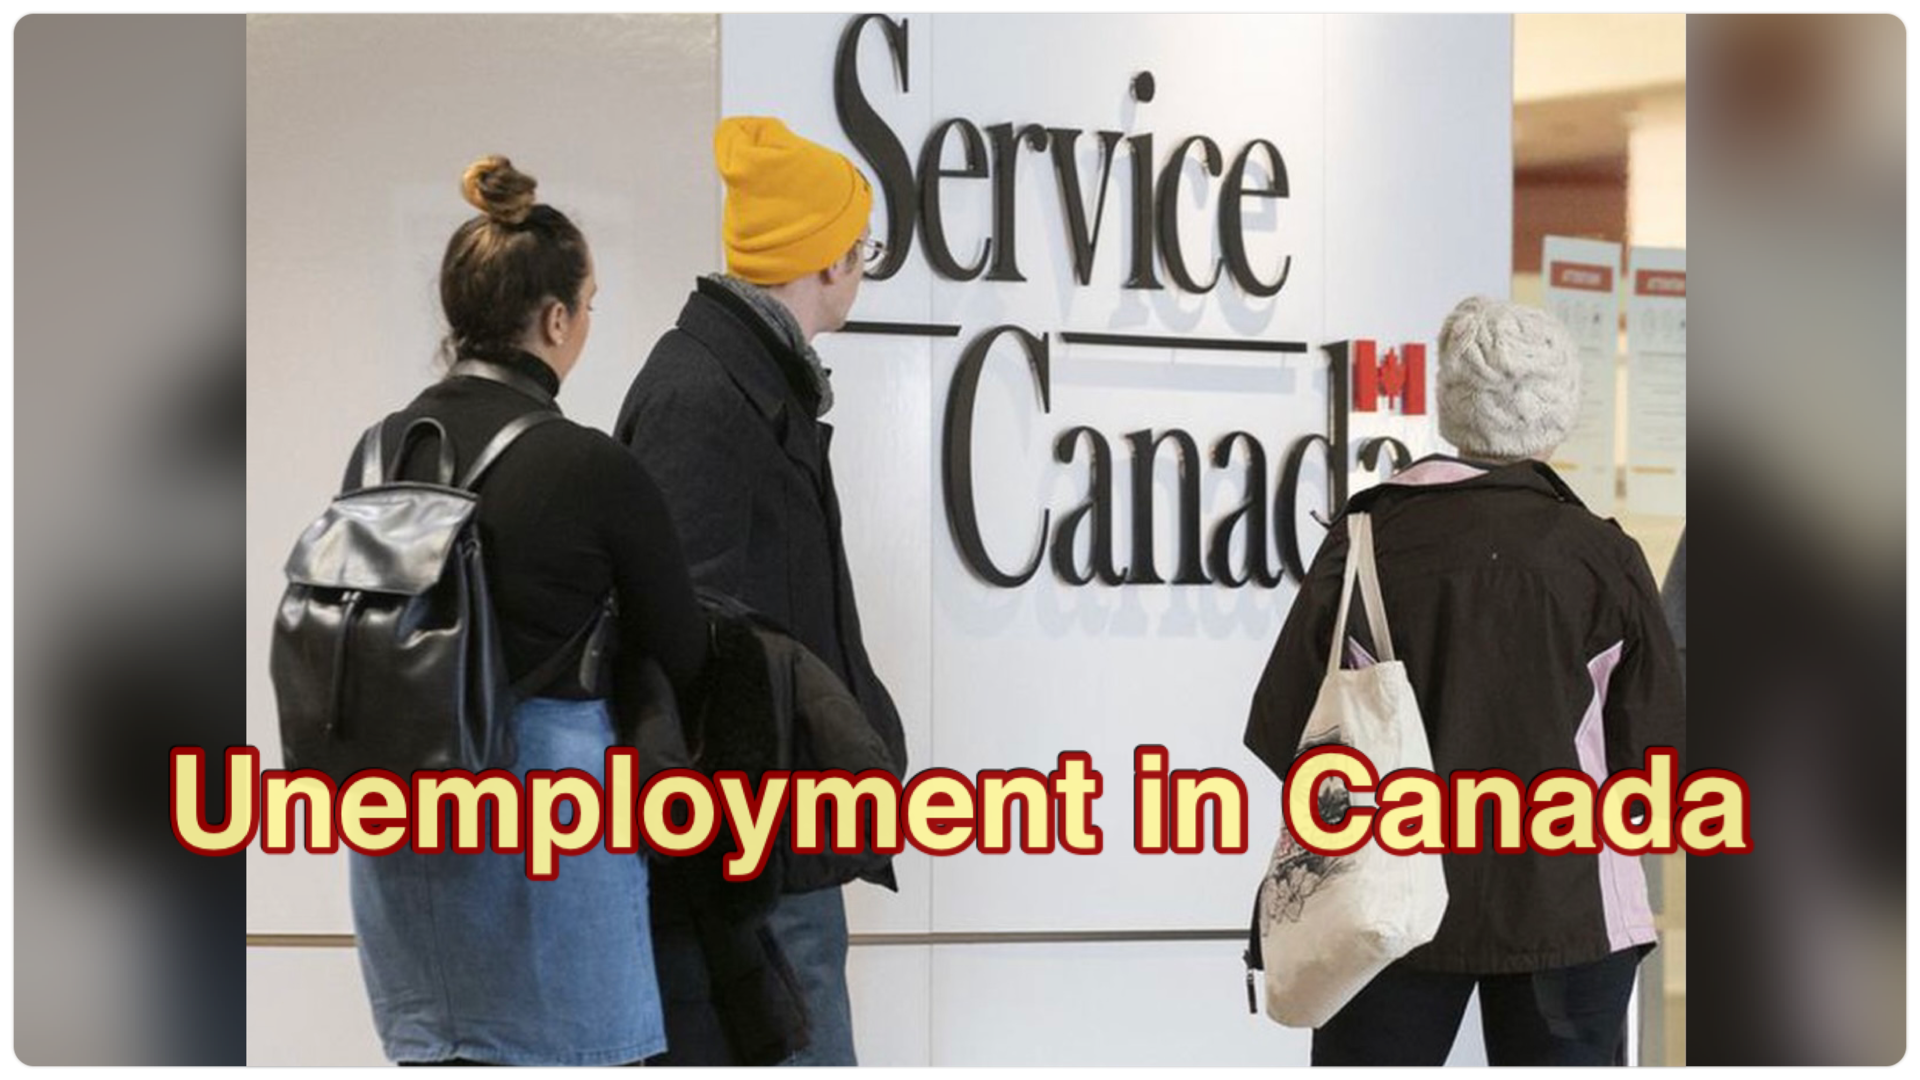 Posthaste Oct. 21: Despite Canada's impressive job recovery, long-term unemployment has jumped 107%